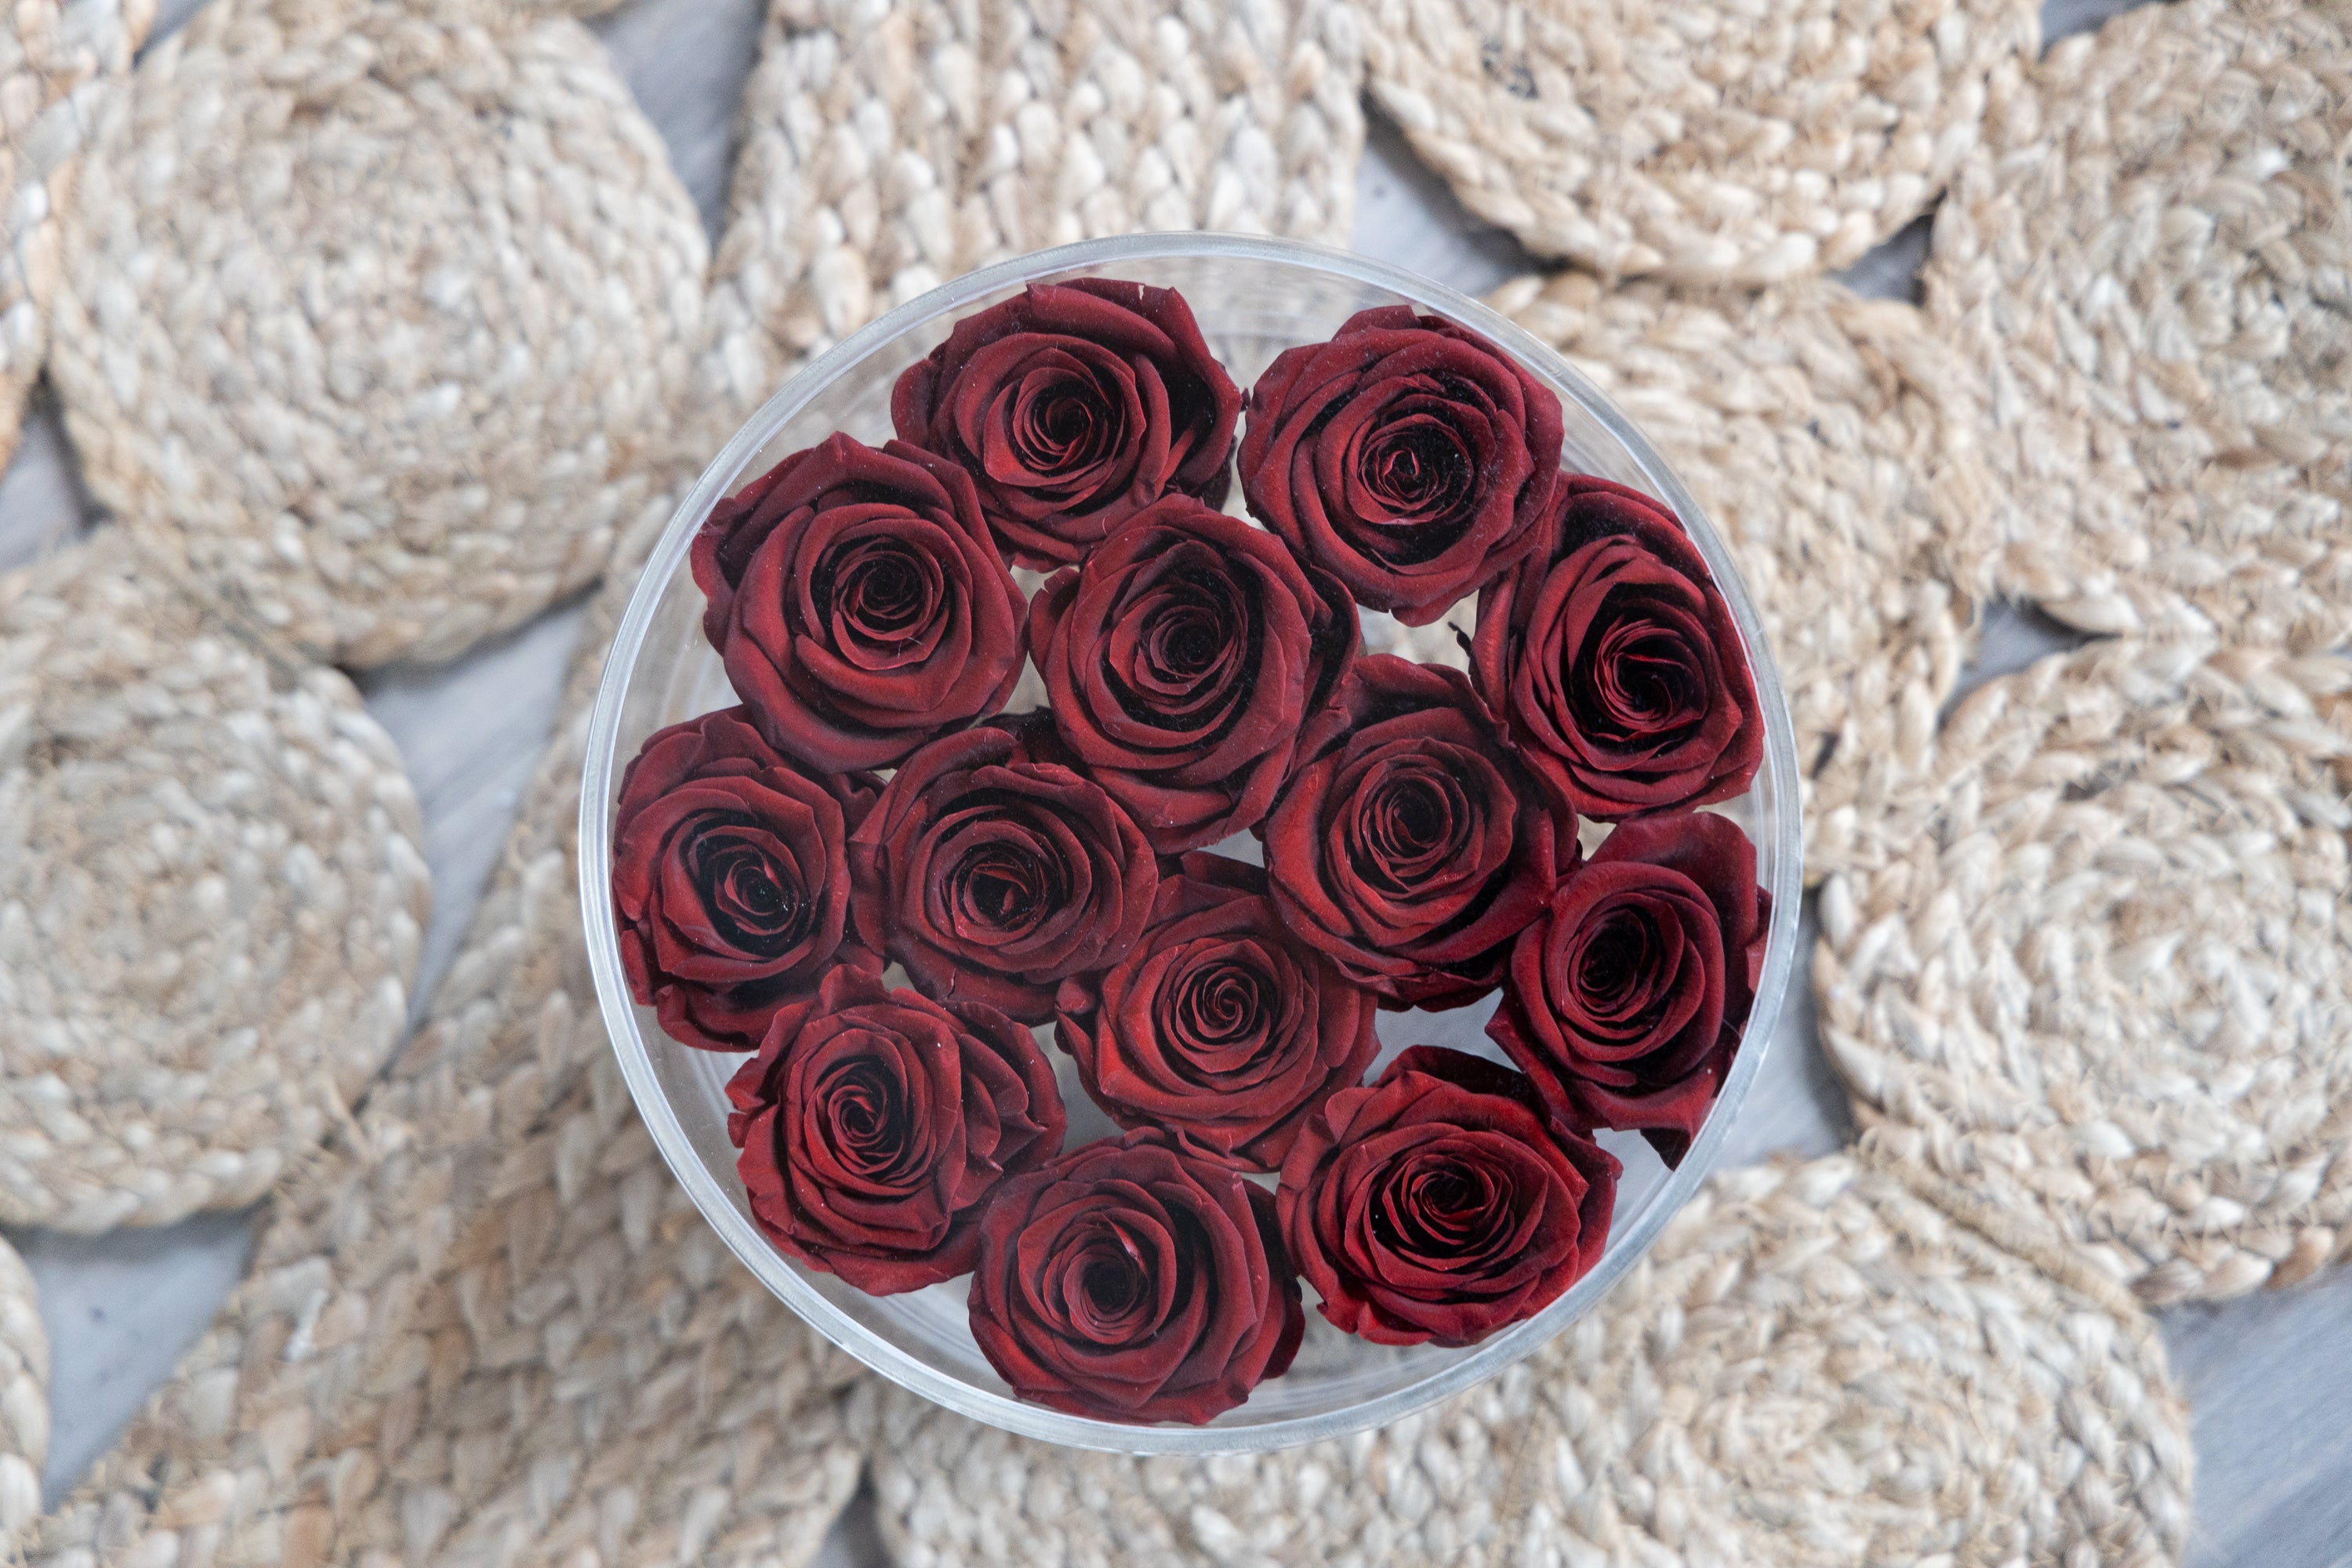 12-16 Large Roses